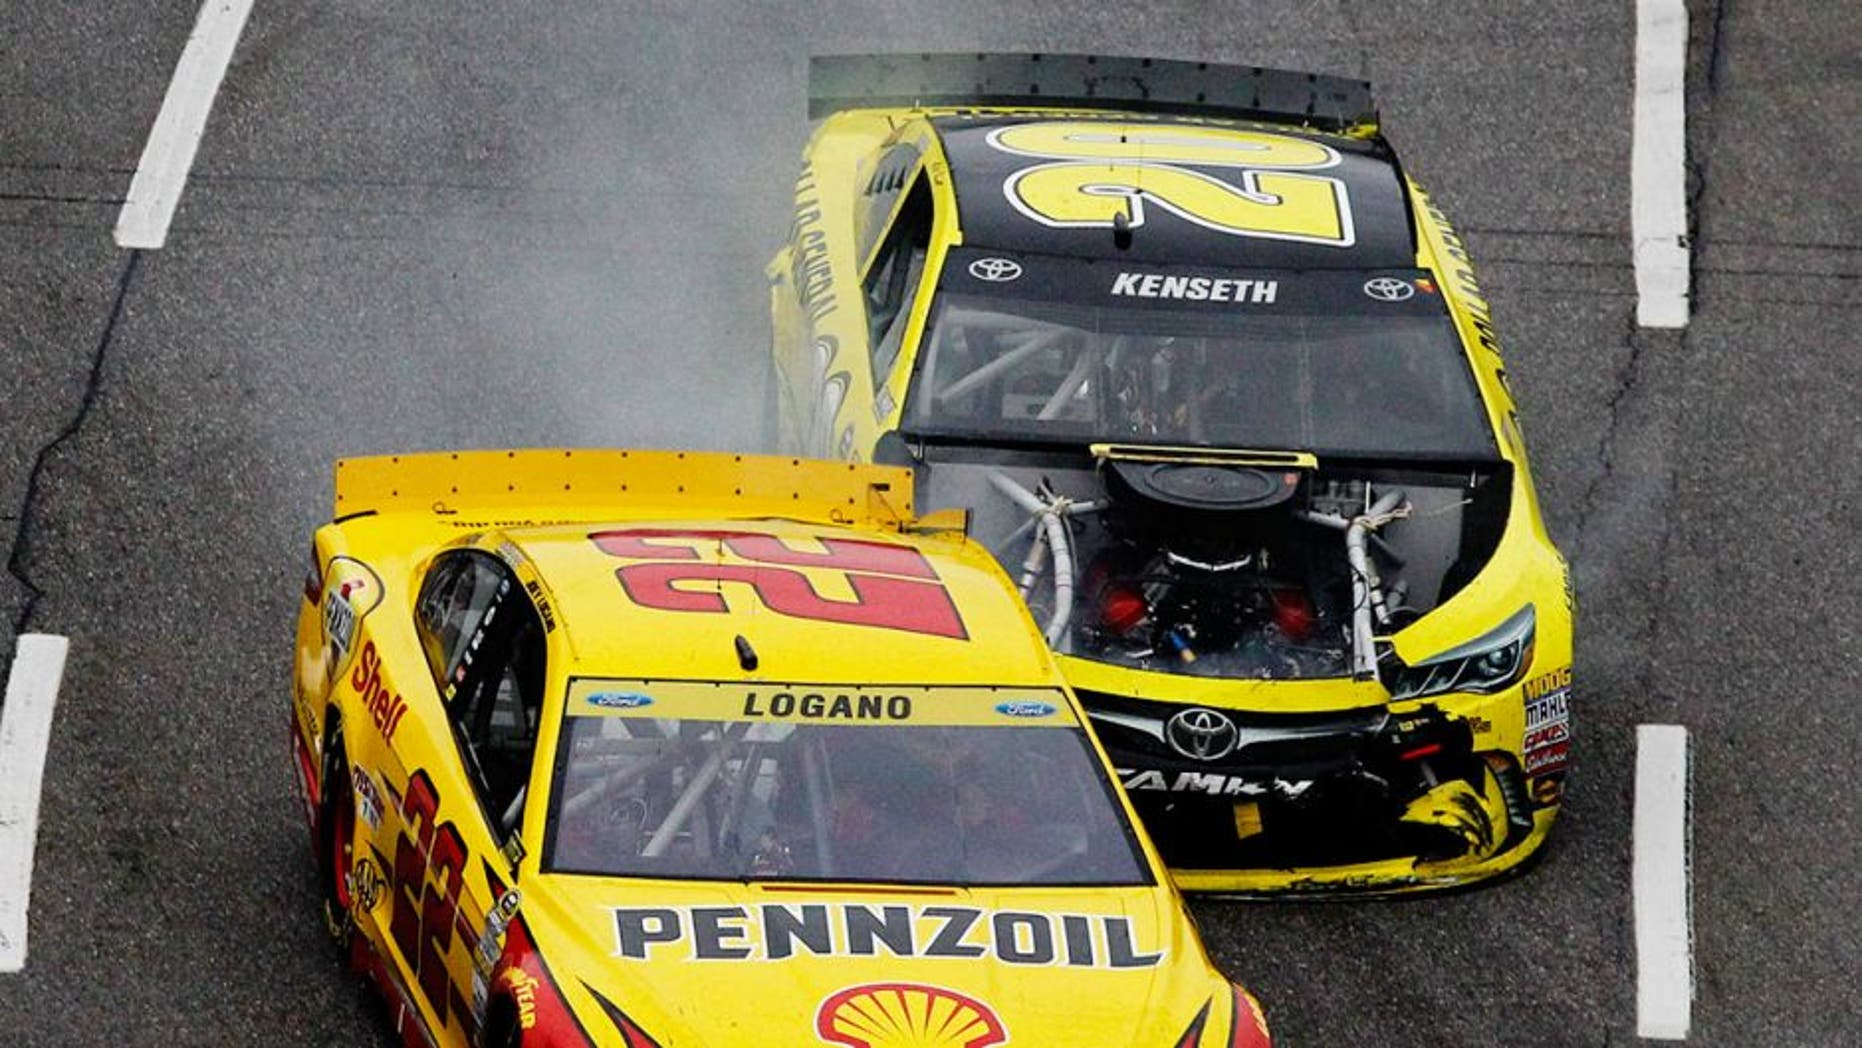 MARTINSVILLE, VA - NOVEMBER 01: Matt Kenseth, driver of the #20 Dollar General Toyota, makes contact with Joey Logano, driver of the #22 Shell Pennzoil Ford, during the NASCAR Sprint Cup Series Goody's Headache Relief Shot 500 at Martinsville Speedway on November 1, 2015 in Martinsville, Virginia. (Photo by Brian Lawdermilk/NASCAR via Getty Images)